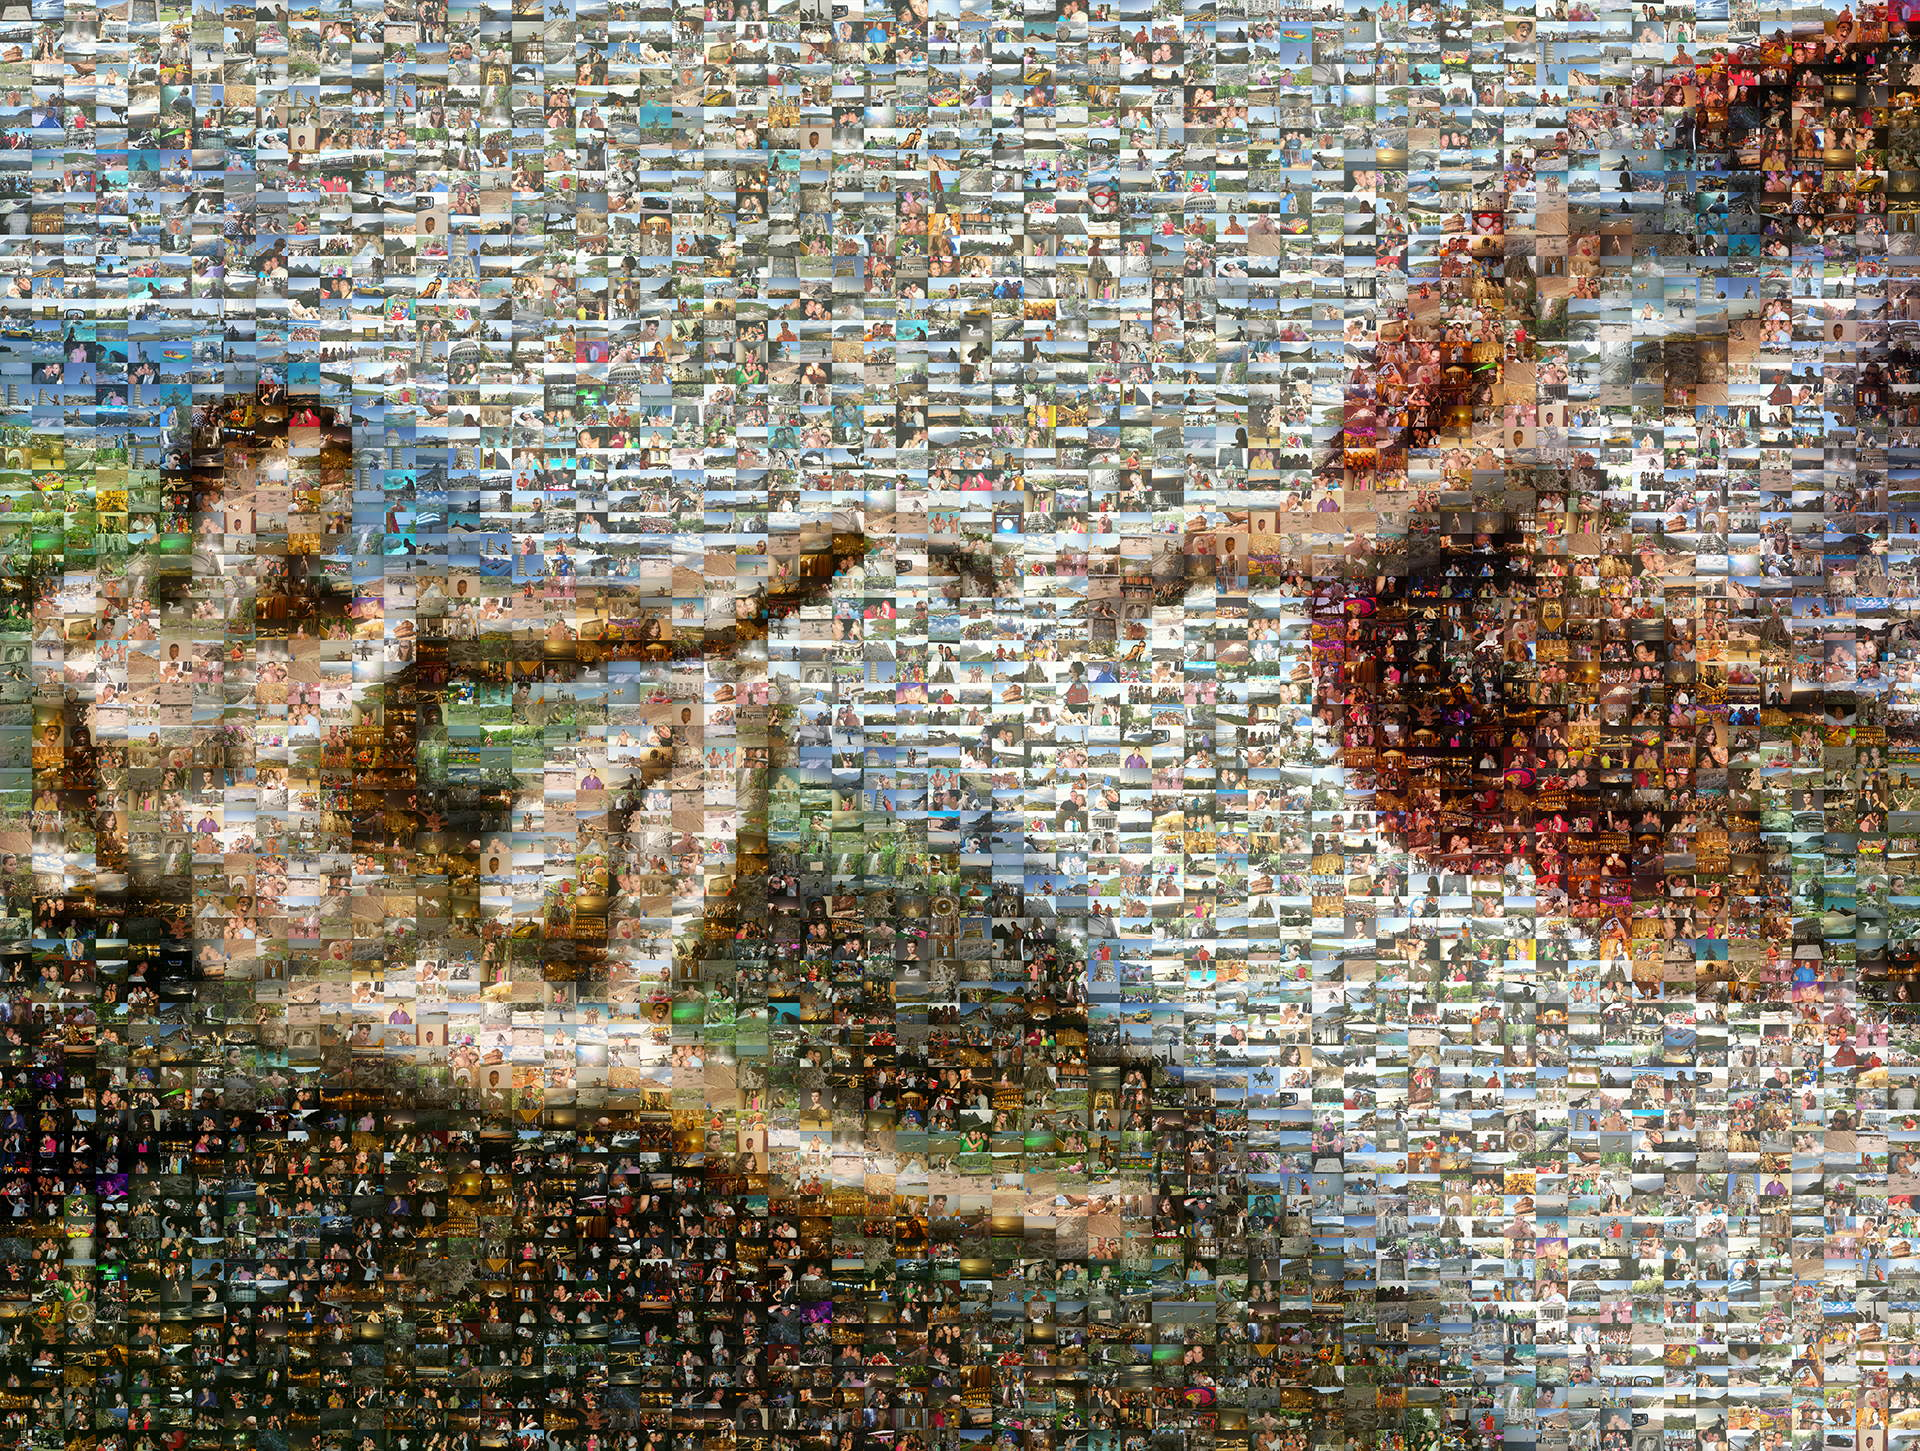 photo mosaic created the famous part of the Sistine Chapel using 1,235 vacation photos